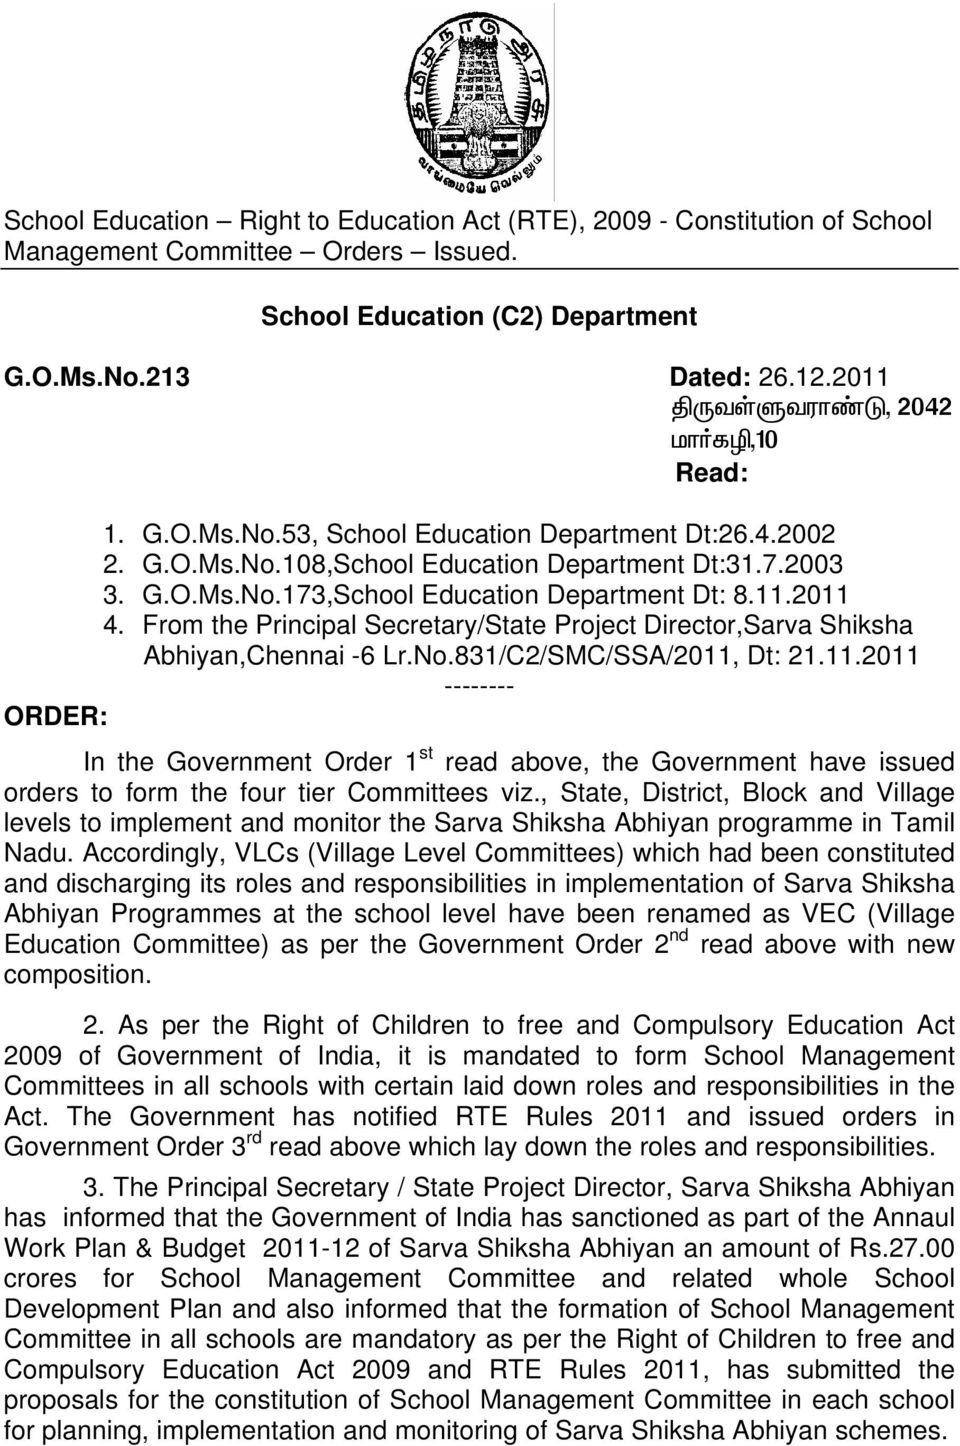 11.2011 4. From the Principal Secretary/State Project Director,Sarva Shiksha Abhiyan,Chennai -6 Lr.No.831/C2/SMC/SSA/2011, Dt: 21.11.2011 -------- ORDER: In the Government Order 1 st read above, the Government have issued orders to form the four tier Committees viz.